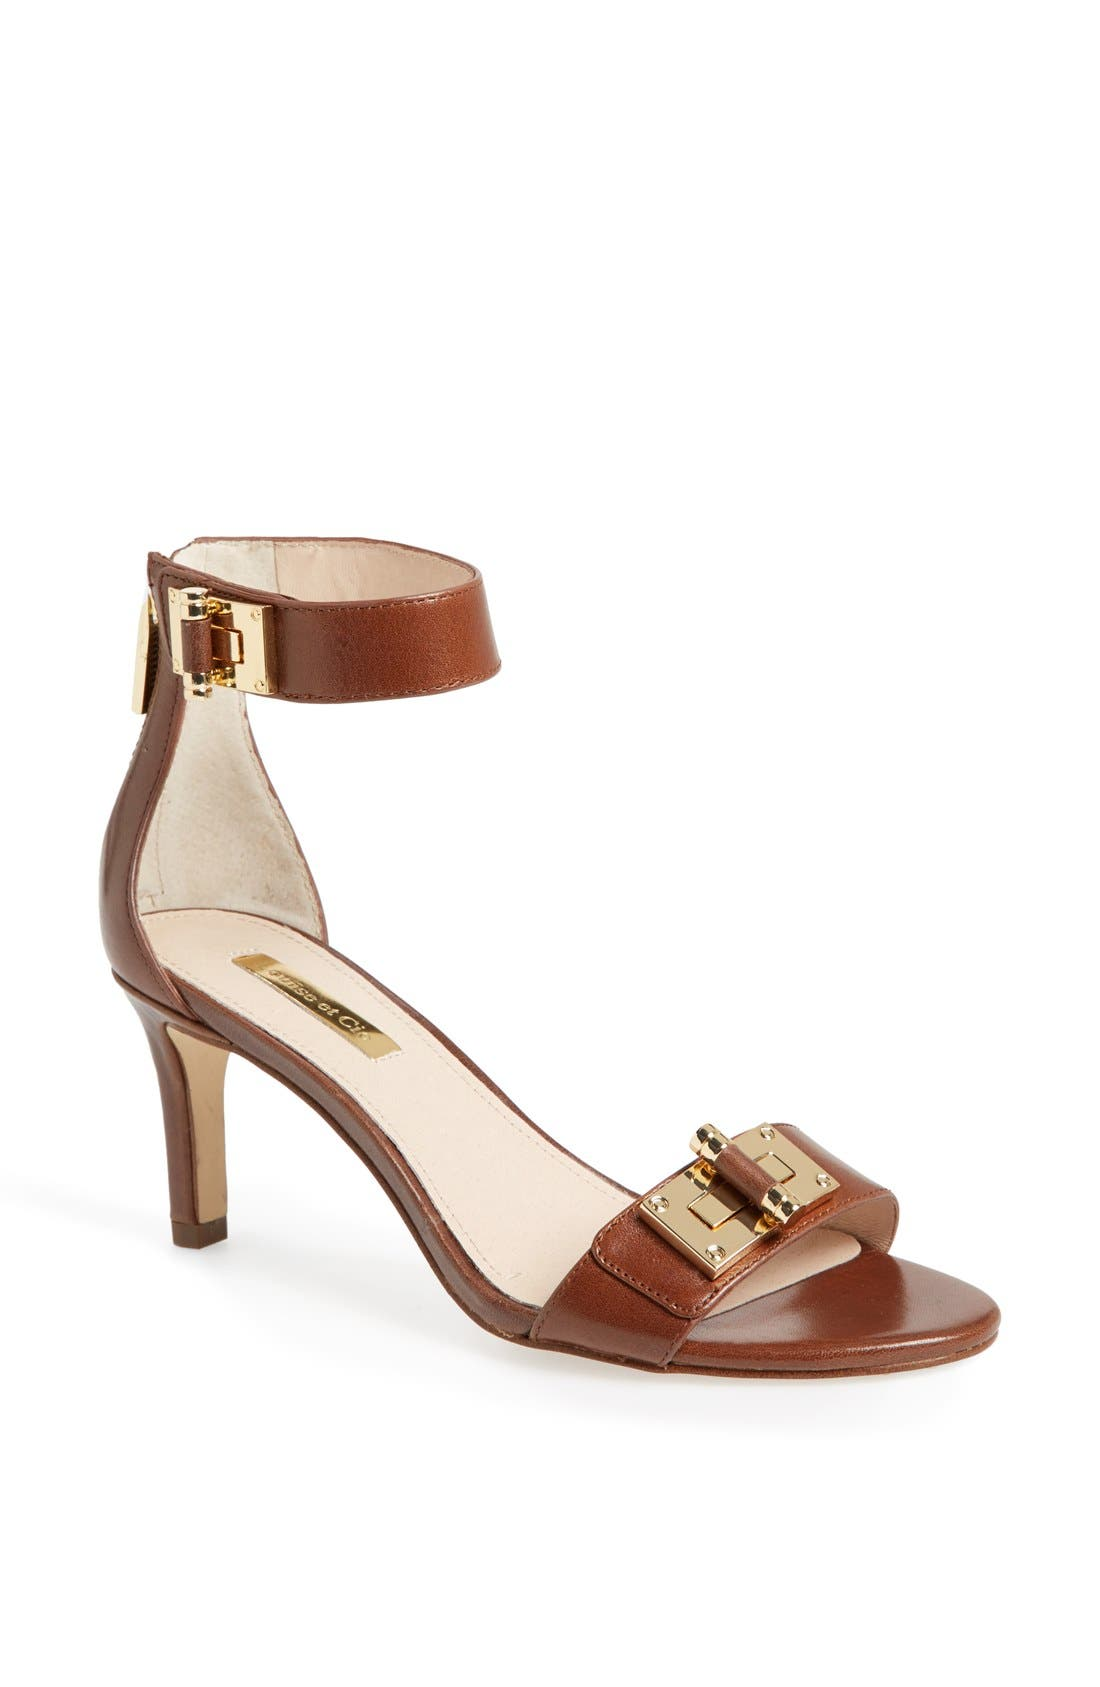 Alternate Image 1 Selected - Louise et Cie 'Kaliope' Sandal